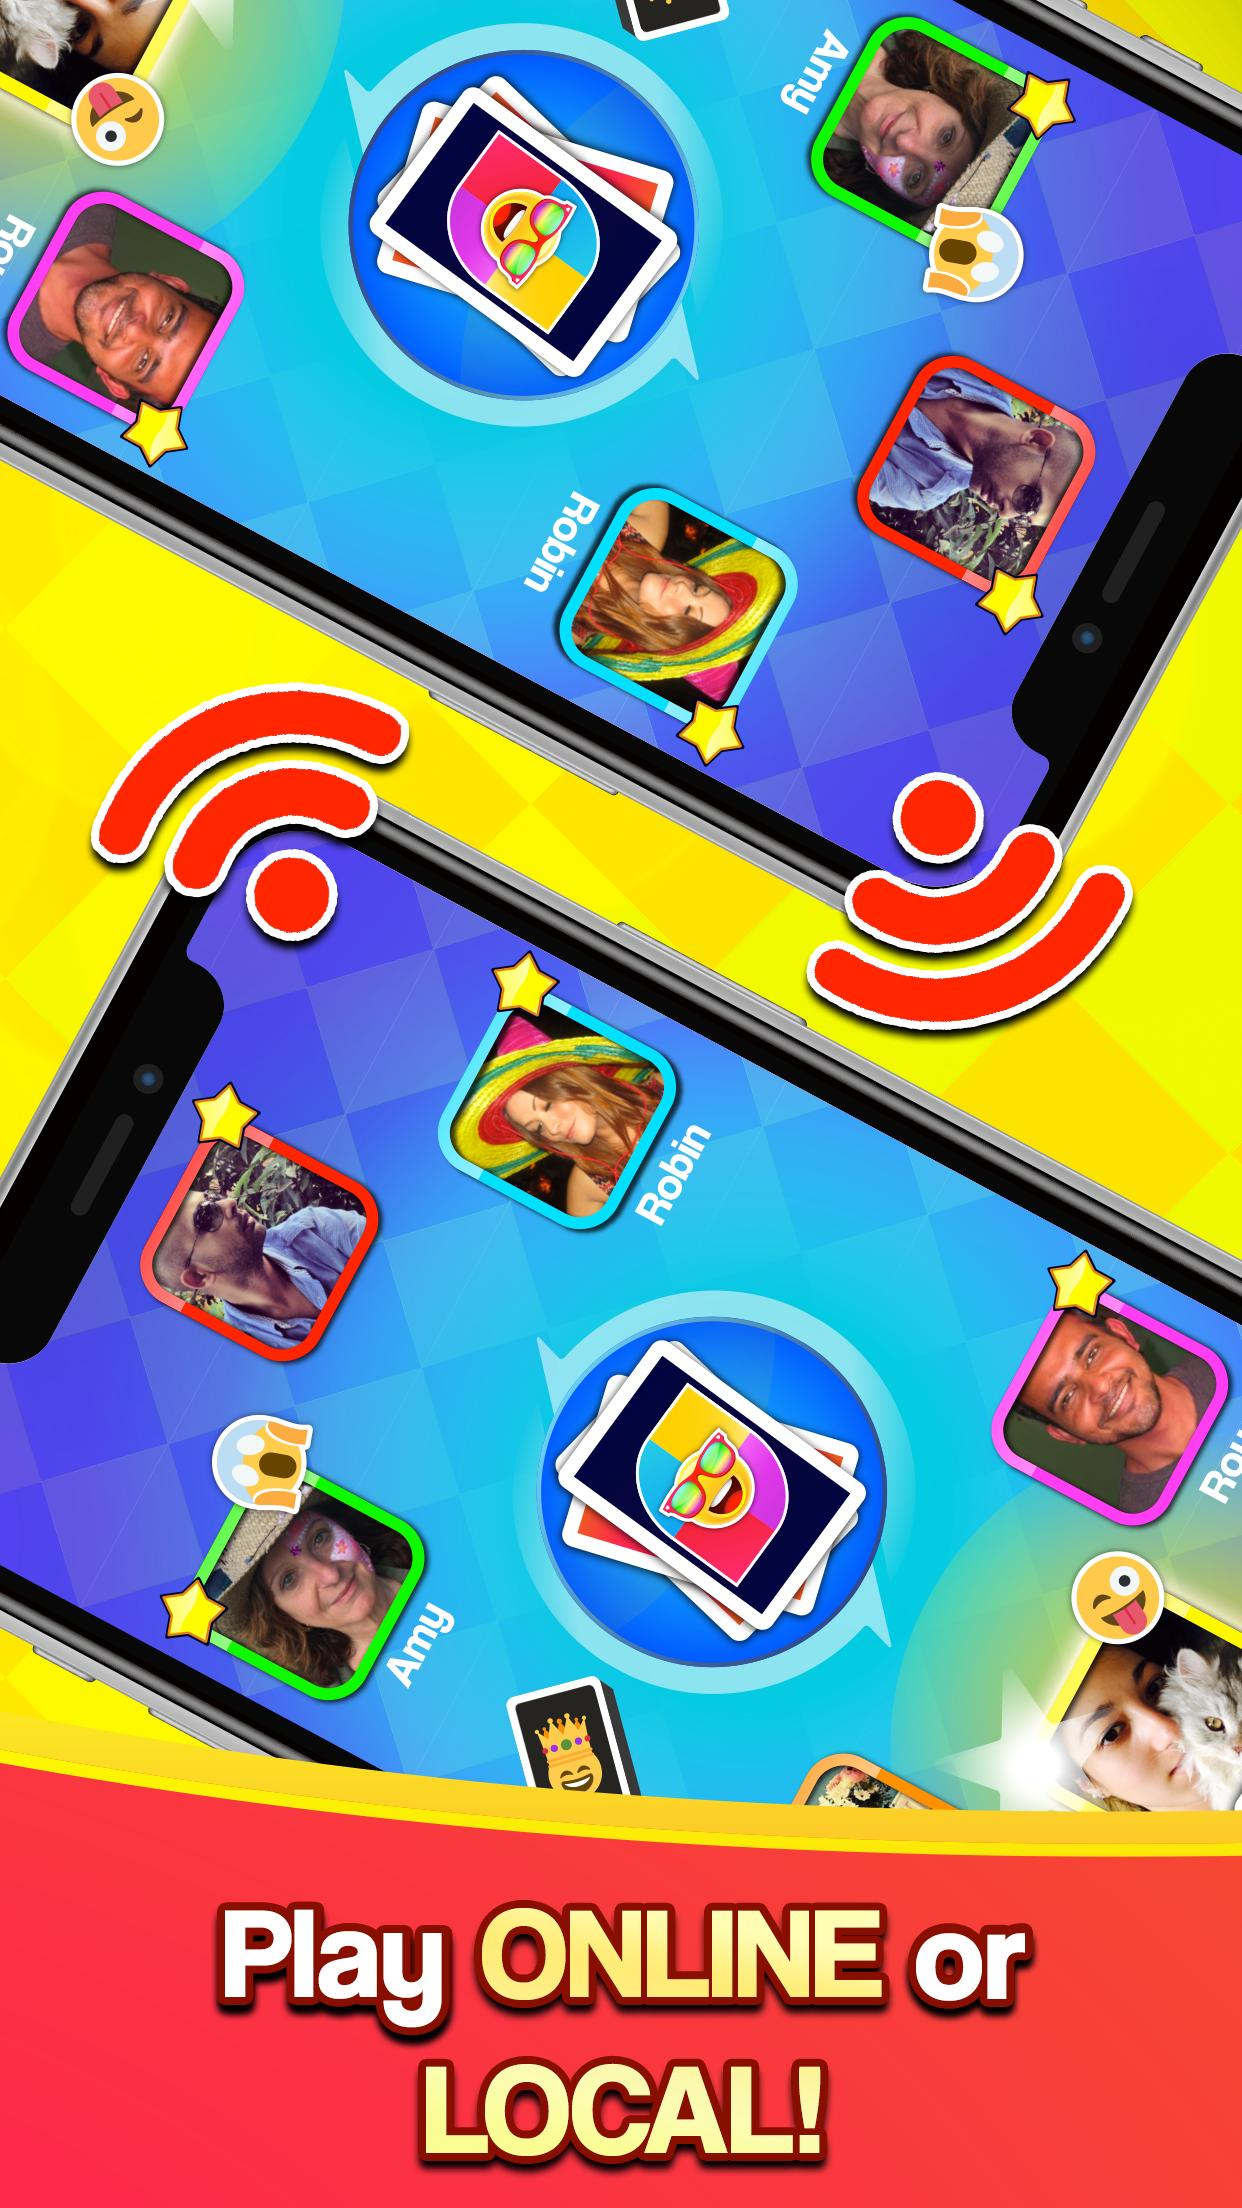 Card Party! - UNO with Friends Online, Card Games 10000000084 Screenshot 3